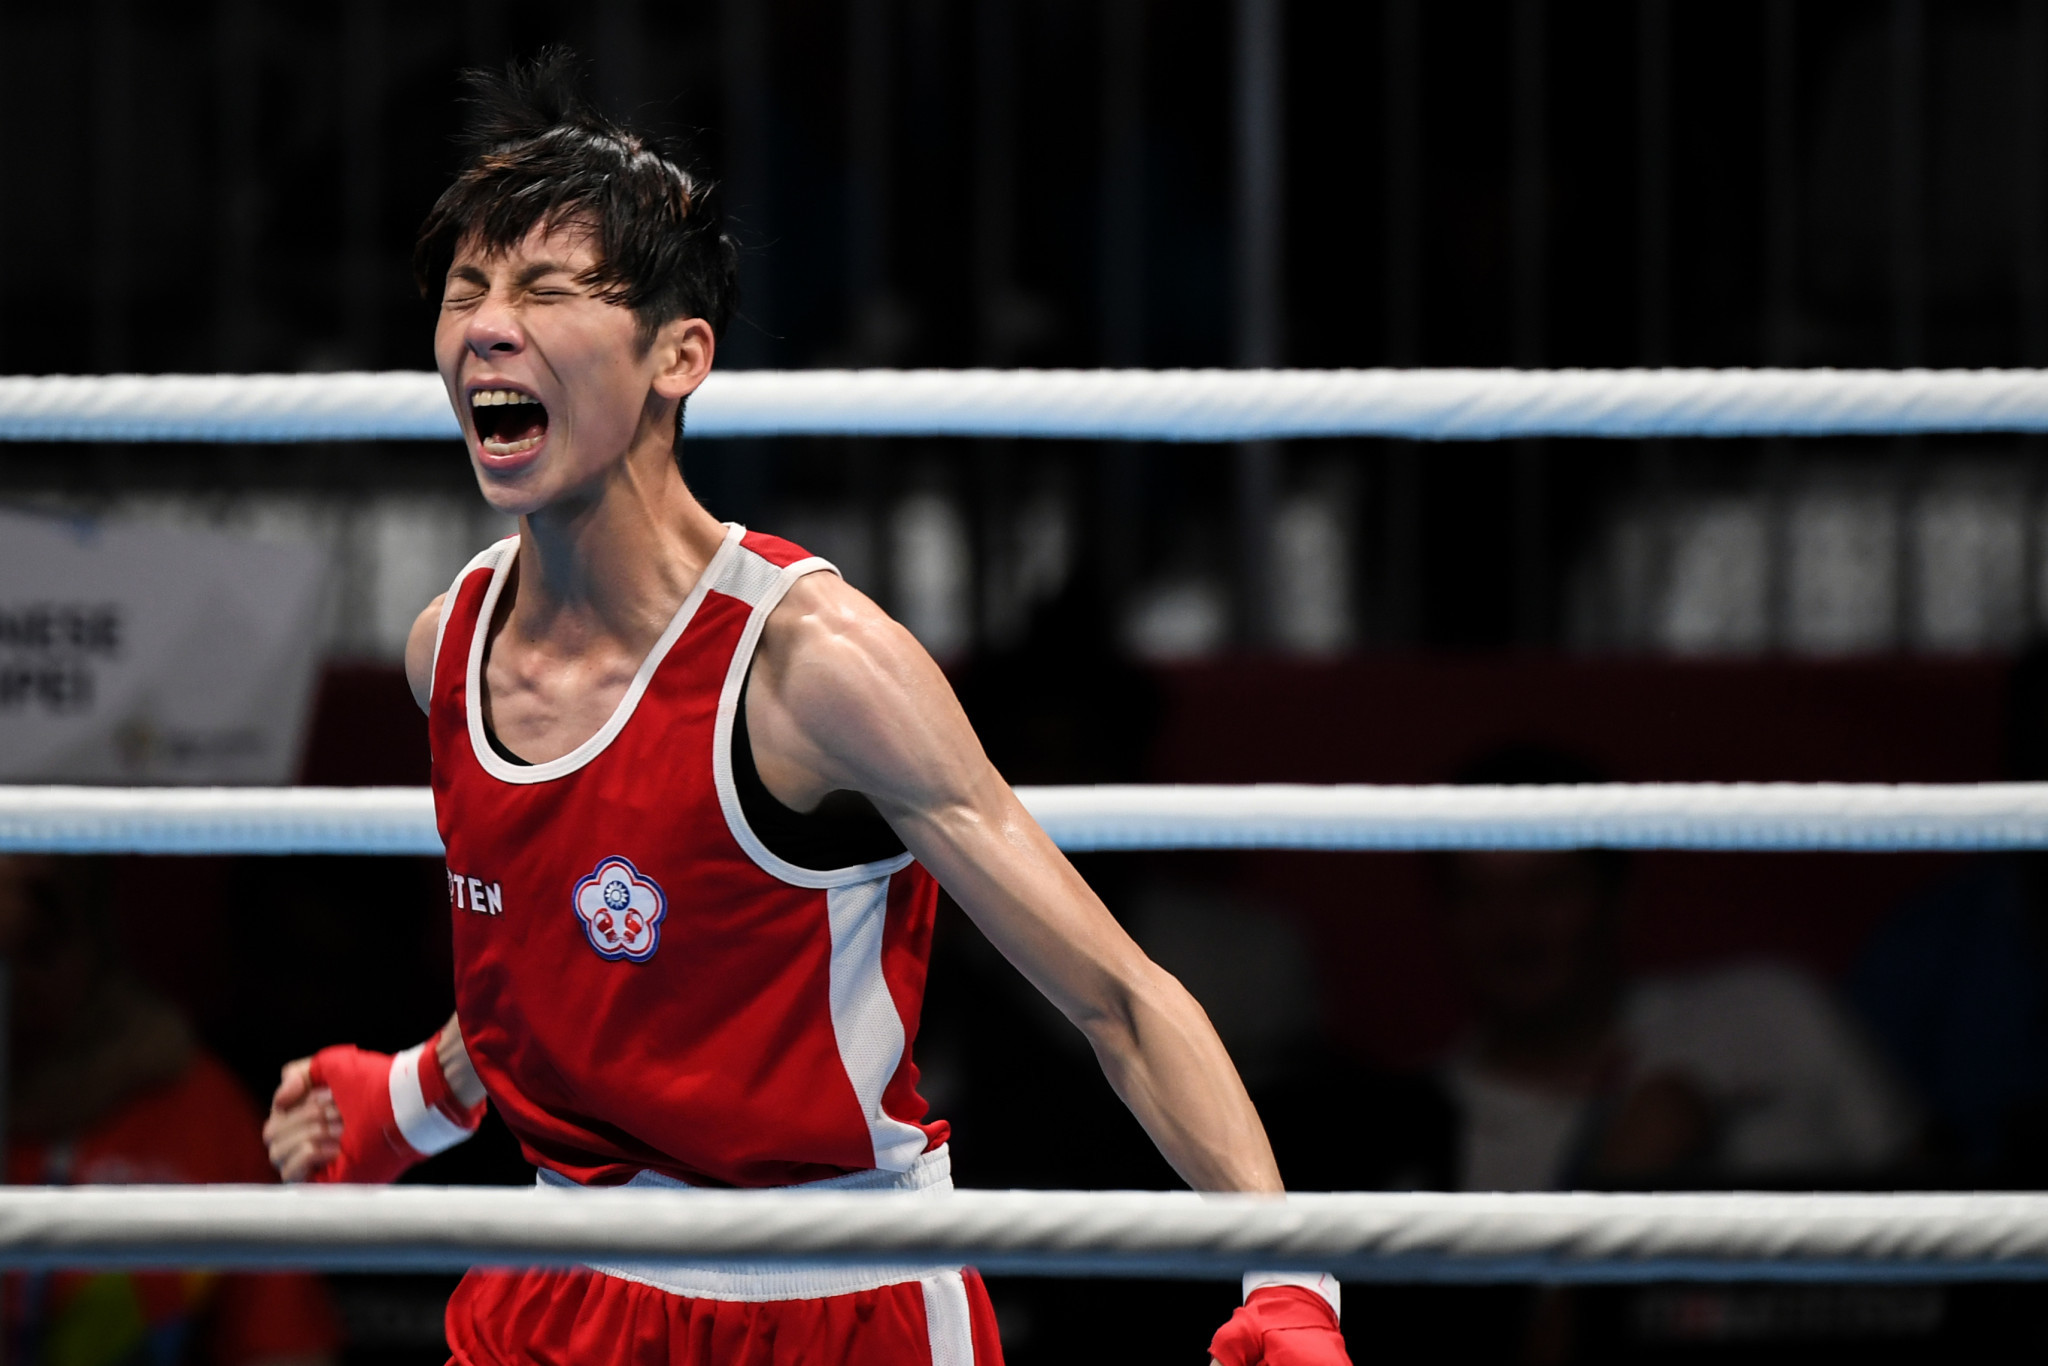 Asian featherweight champion Lin overcomes Nicolson at AIBA Women's World Championships